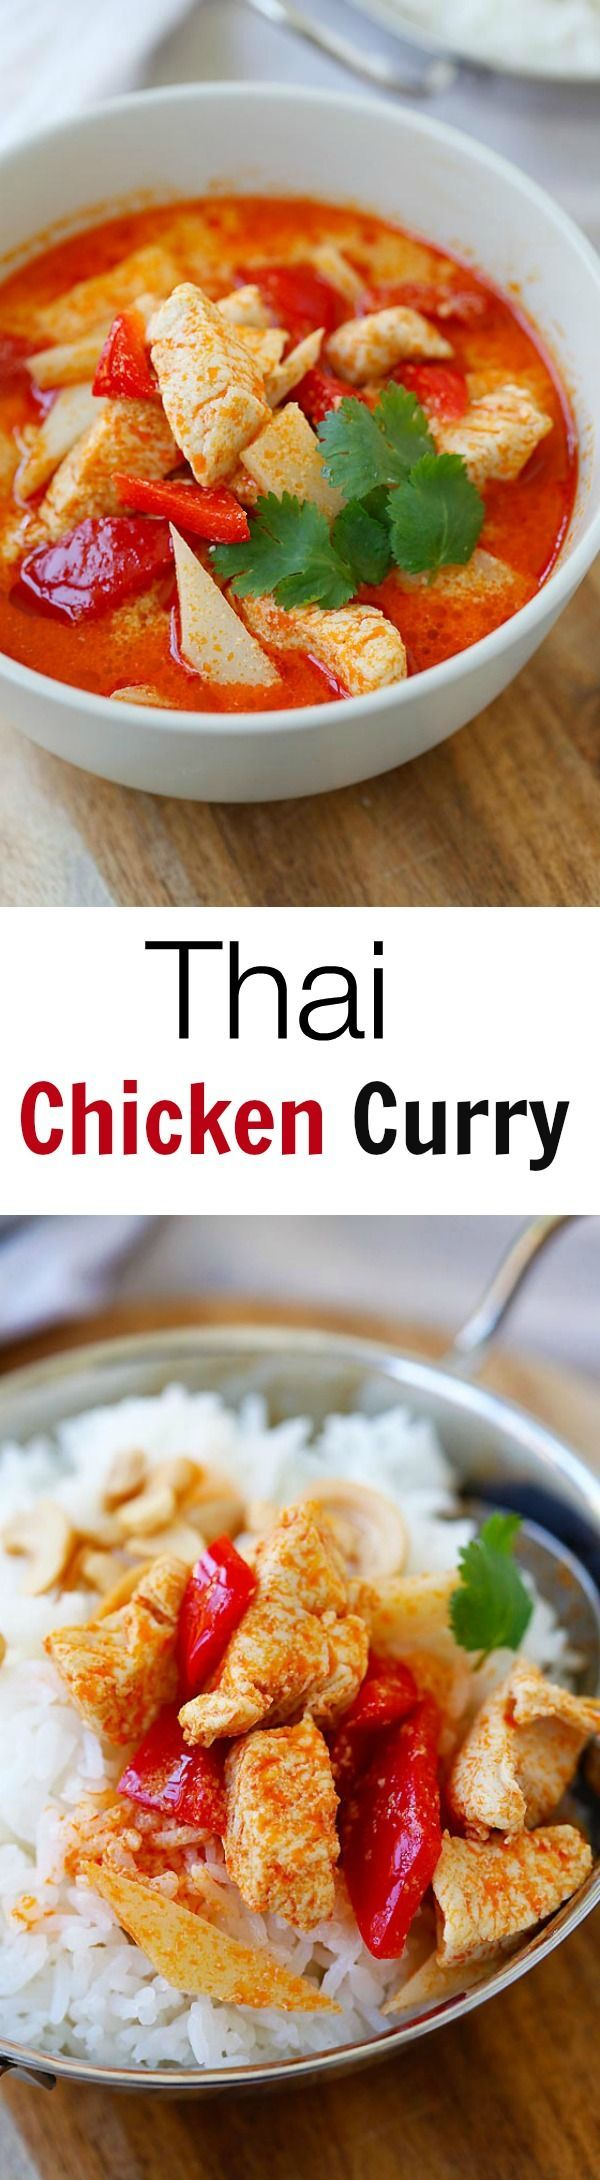 Thai Chicken Curry - homemade Thai chicken curry is SO easy to make with simple ingredients. It's a zillion times better and healthier than takeout! | rasamalaysia.com